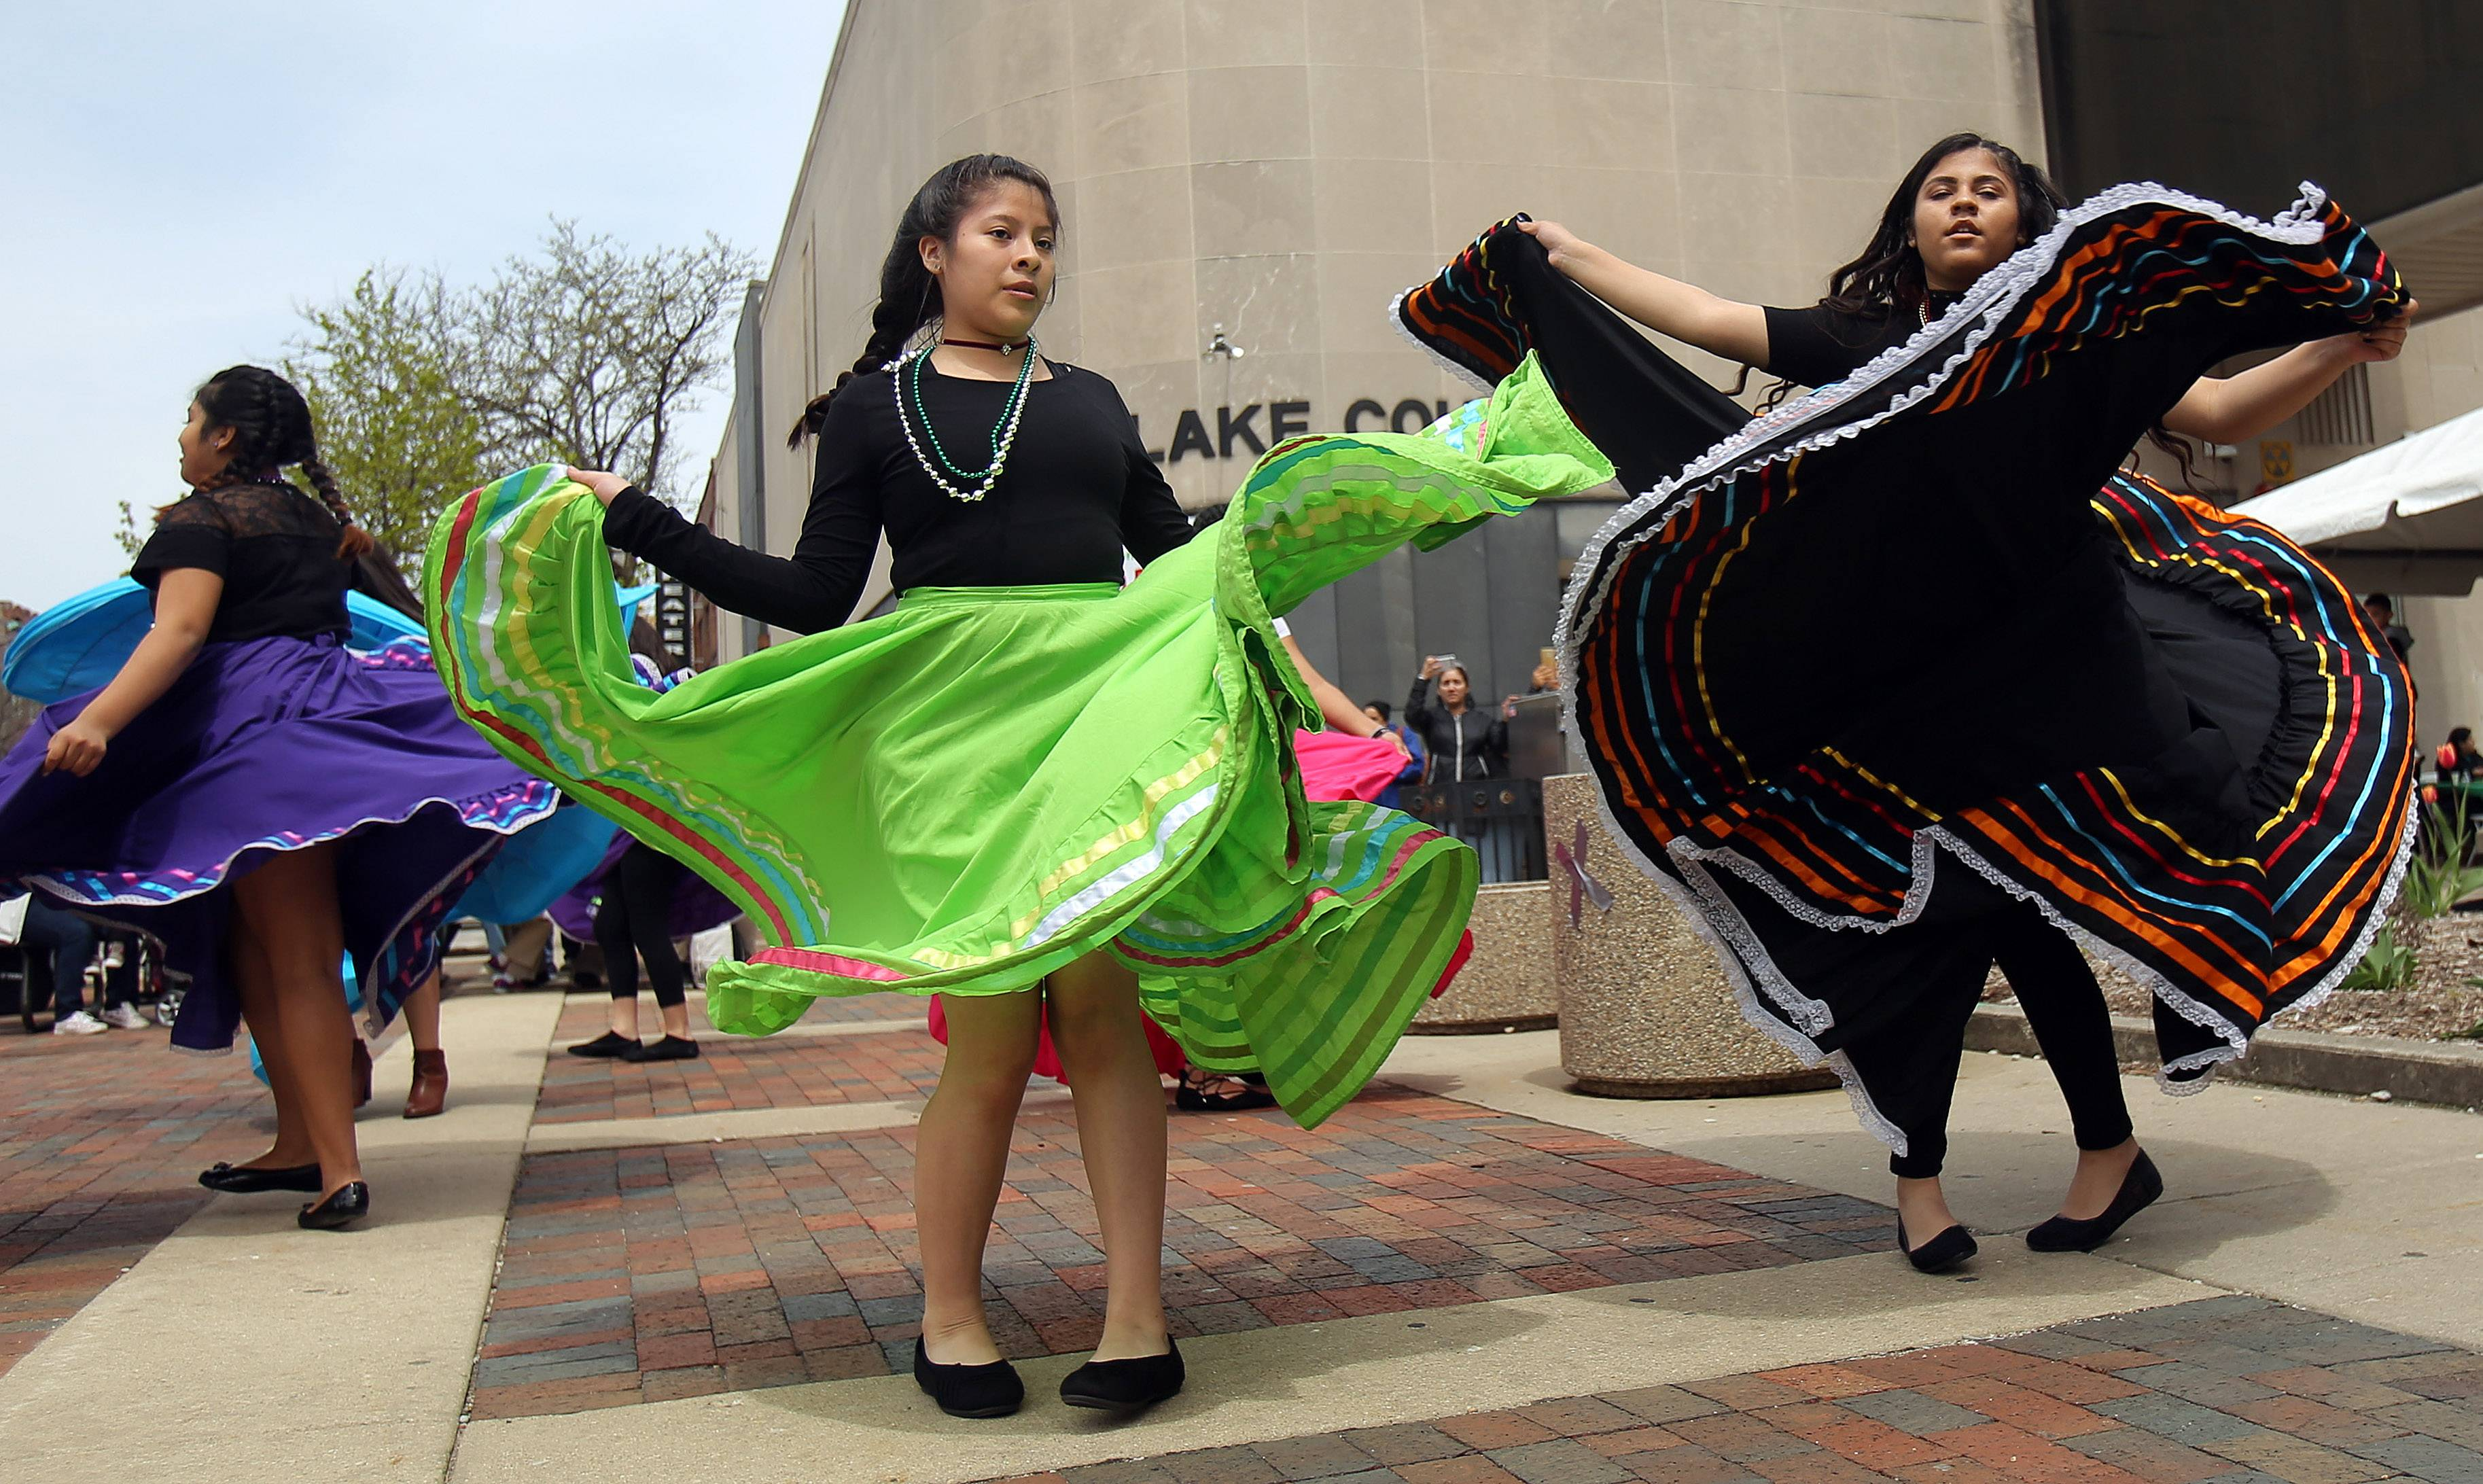 Folkloric dancers from Abbott Middle School in Waukegan perform Thursday during the College of Lake County's 14th annual Cinco de Mayo event at its Lake Shore Campus in Waukegan.